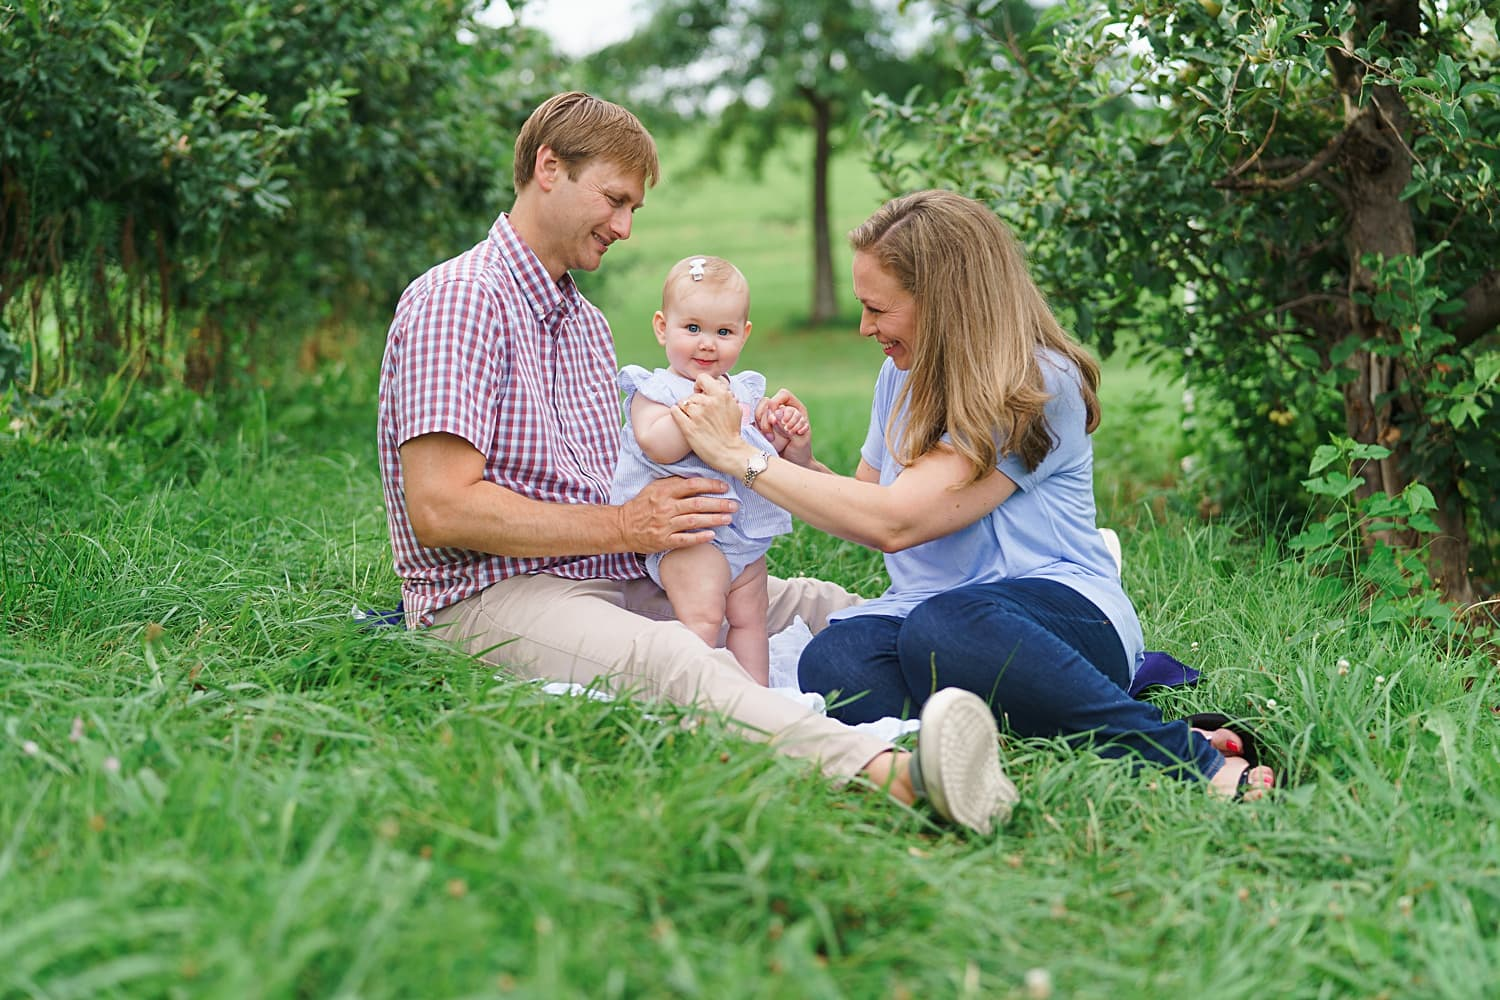 sweet family photos at an apple orchard